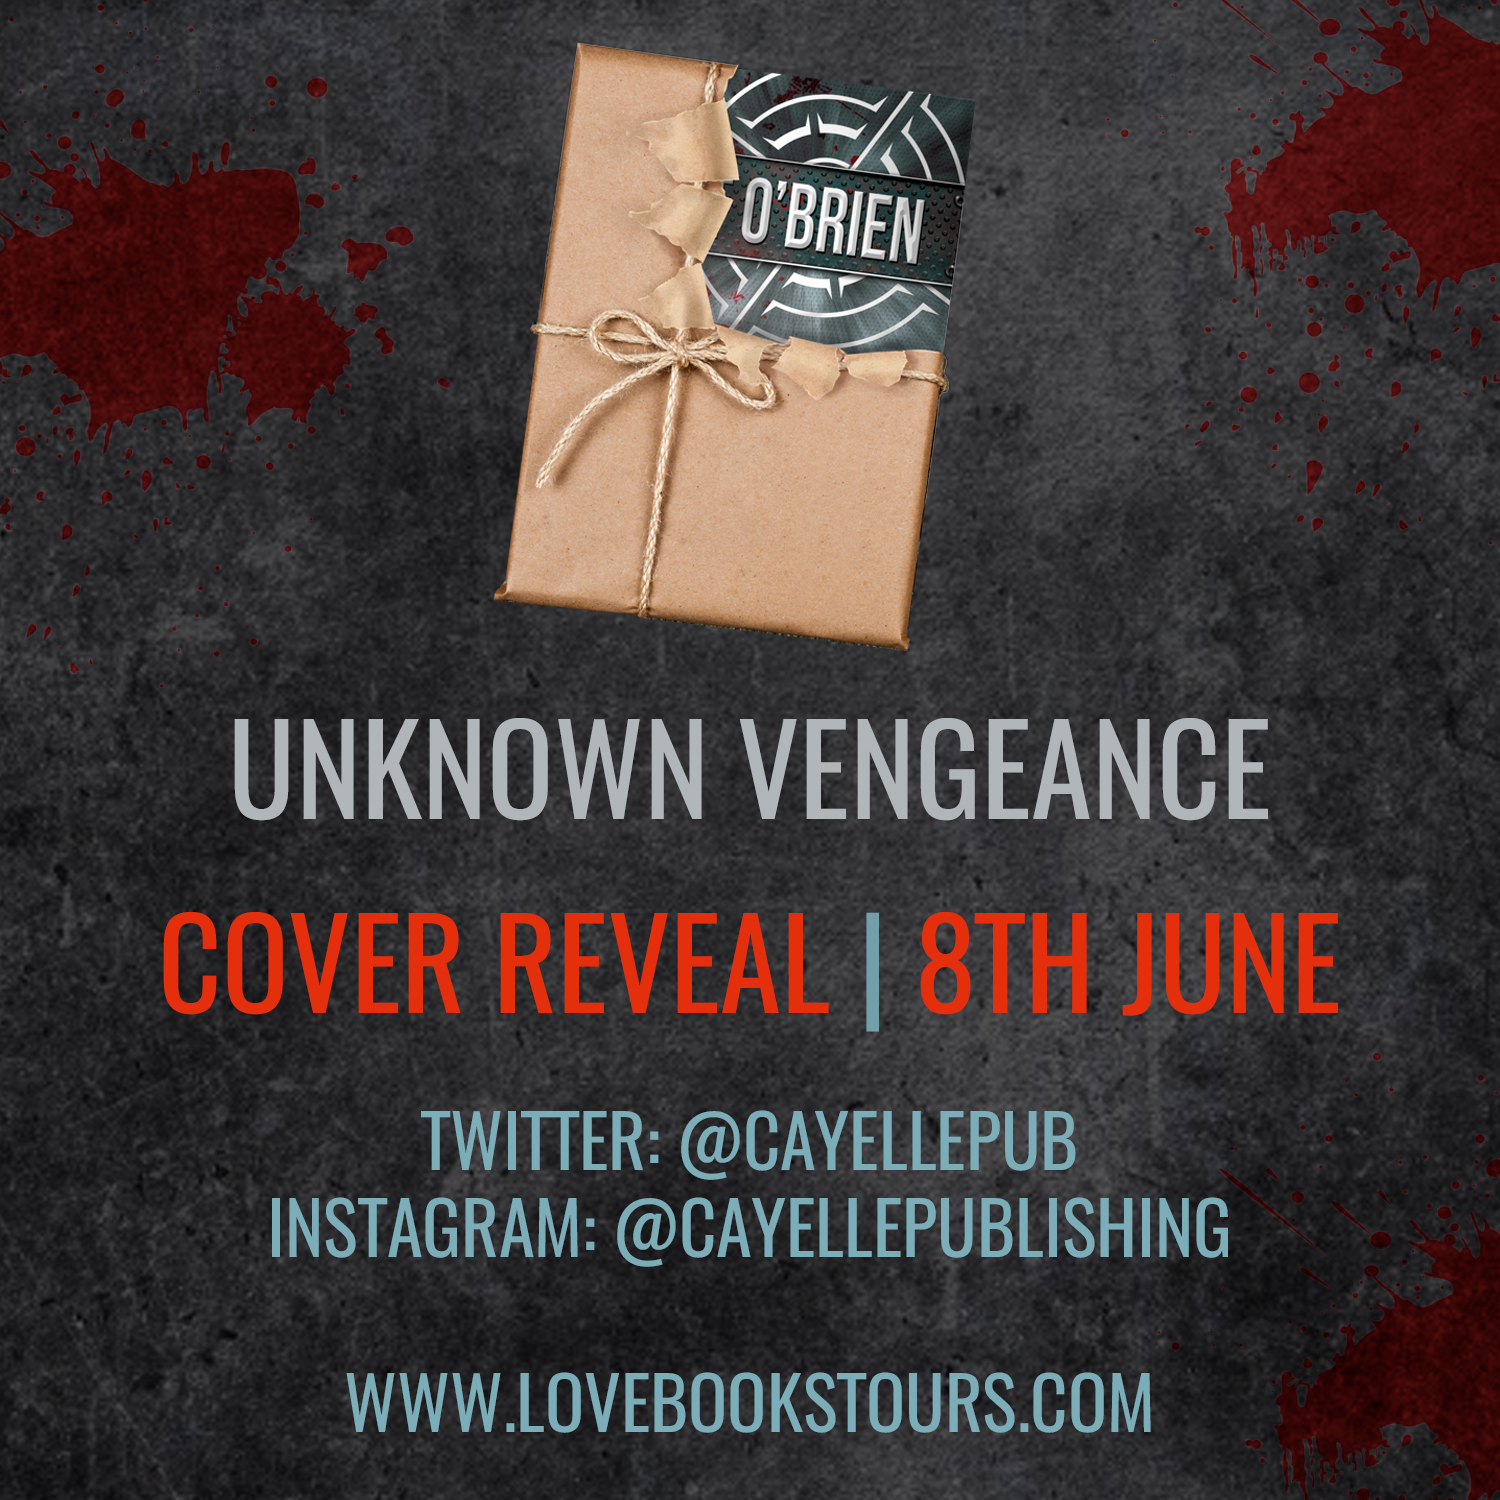 unknown vengeance cover reveal